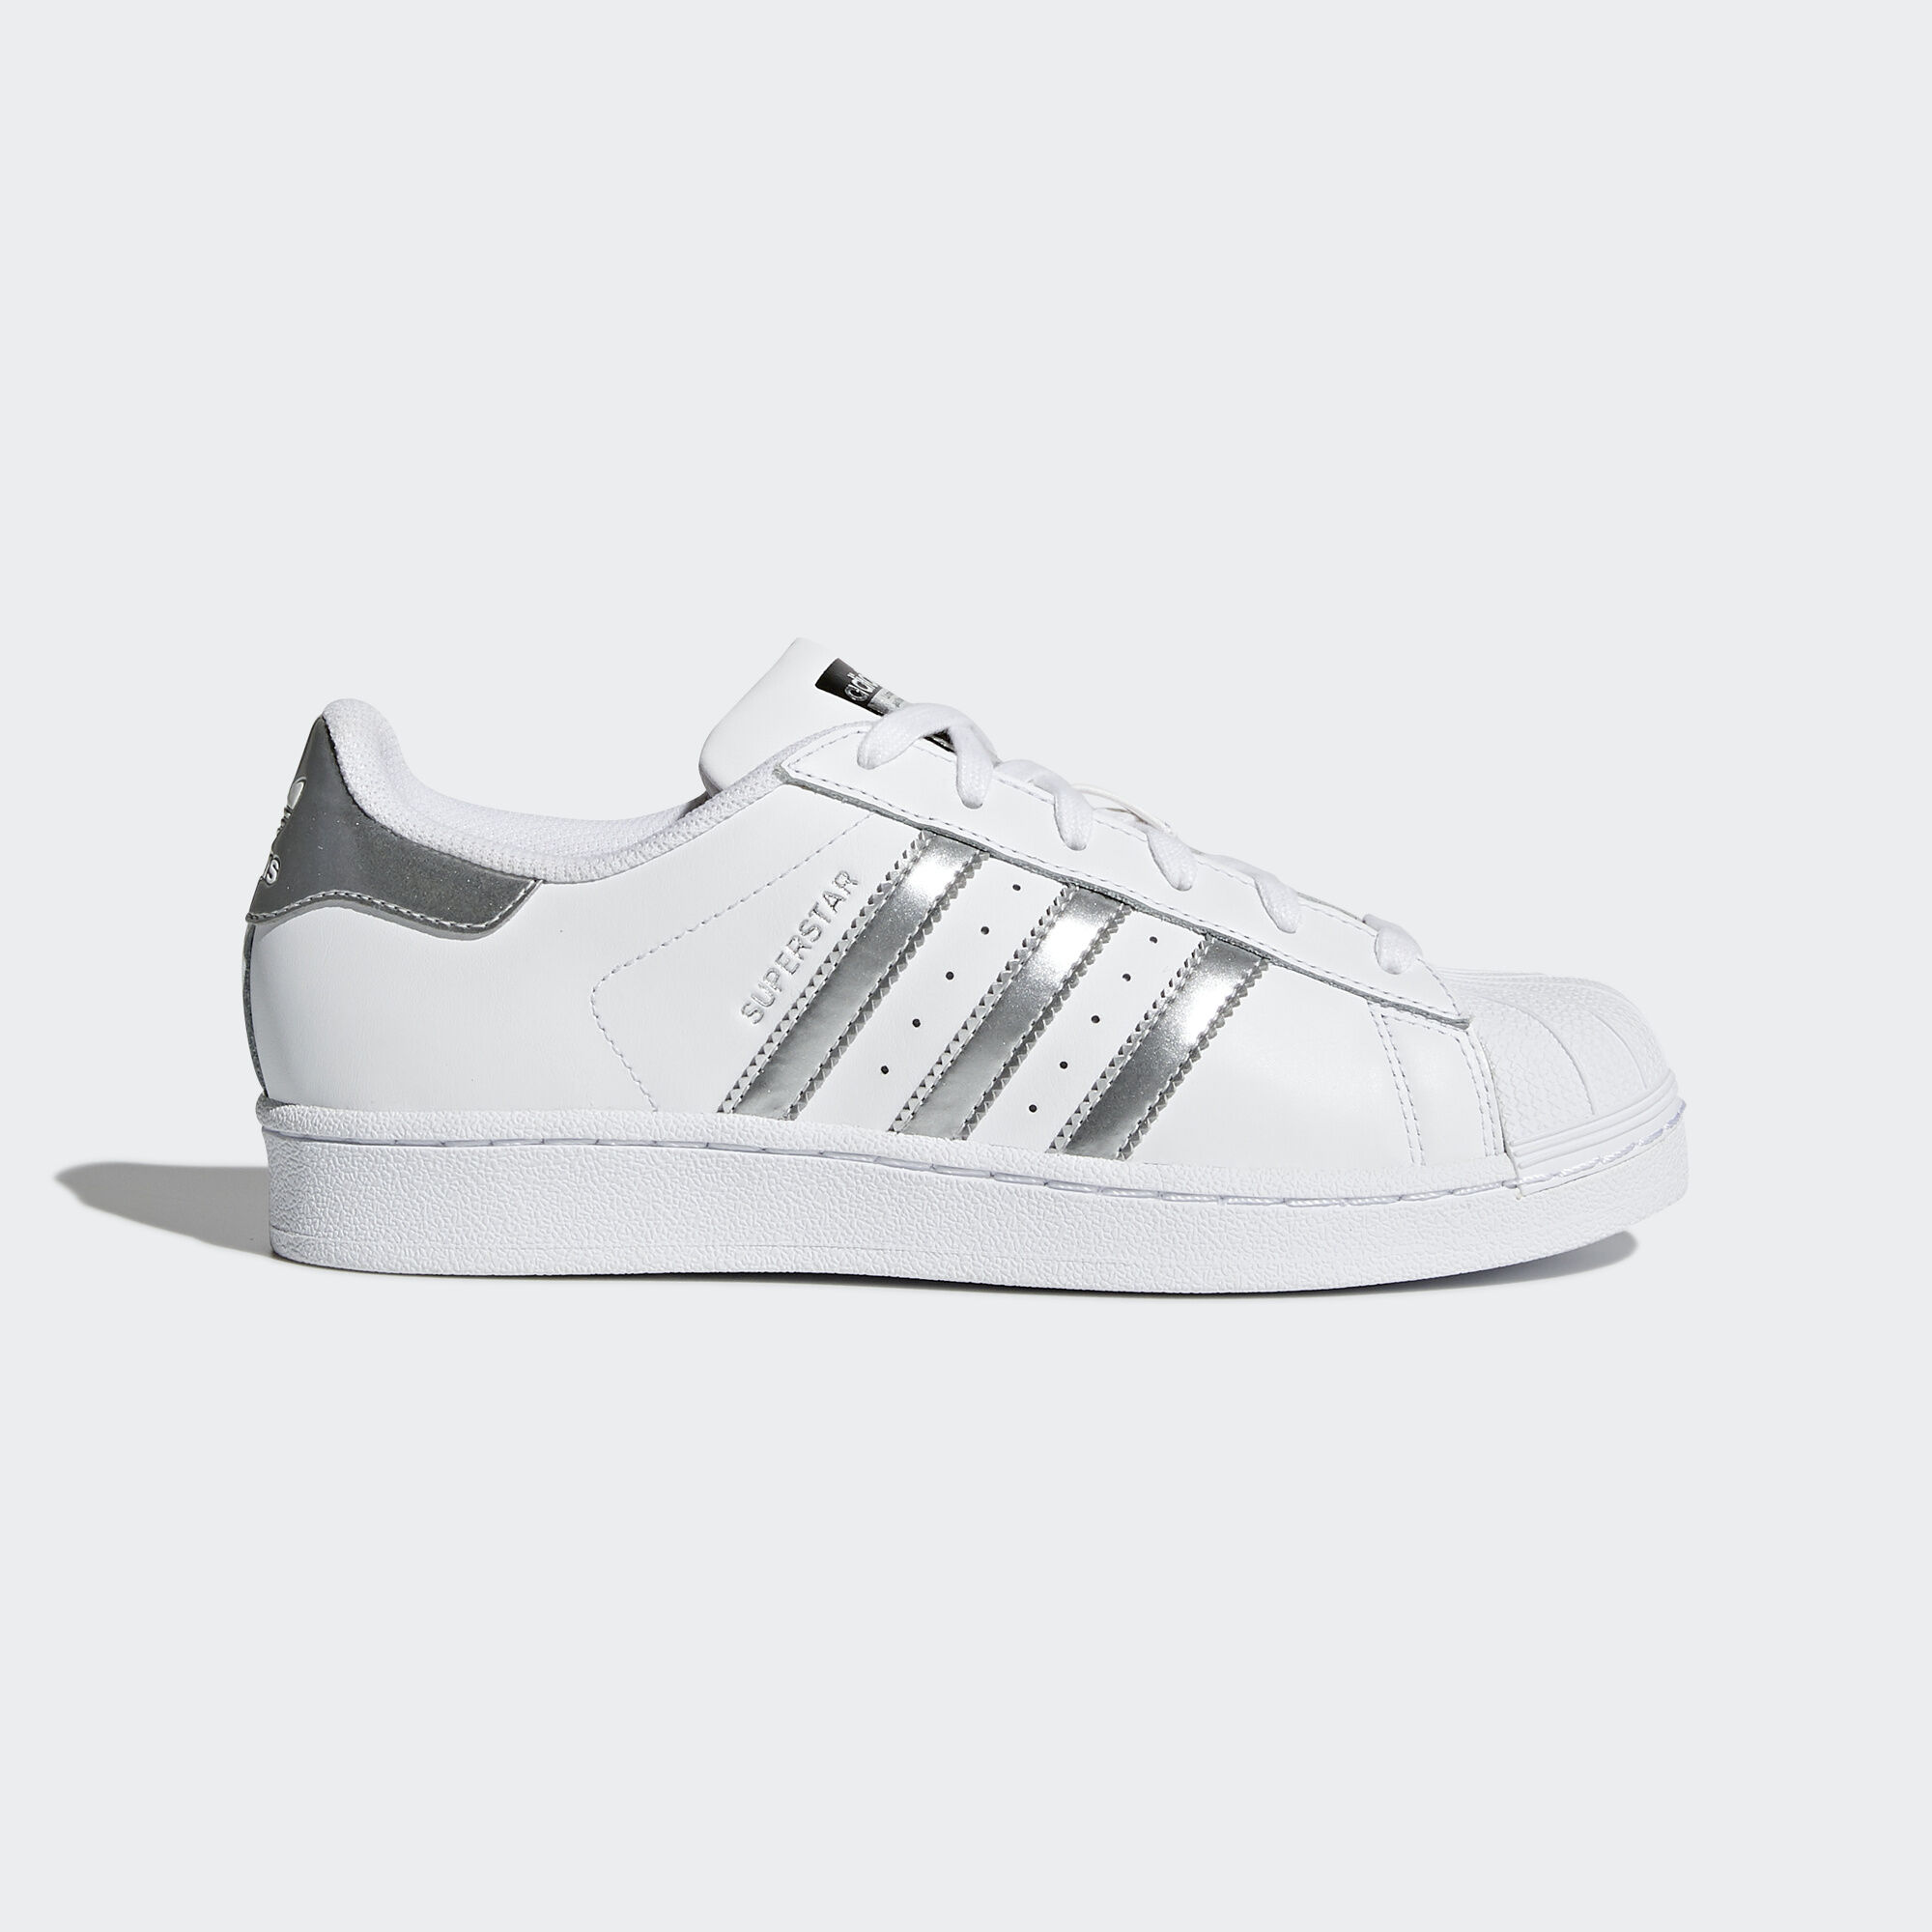 adidas - Chaussure Superstar White/Silver Metallic/Core Black AQ3091